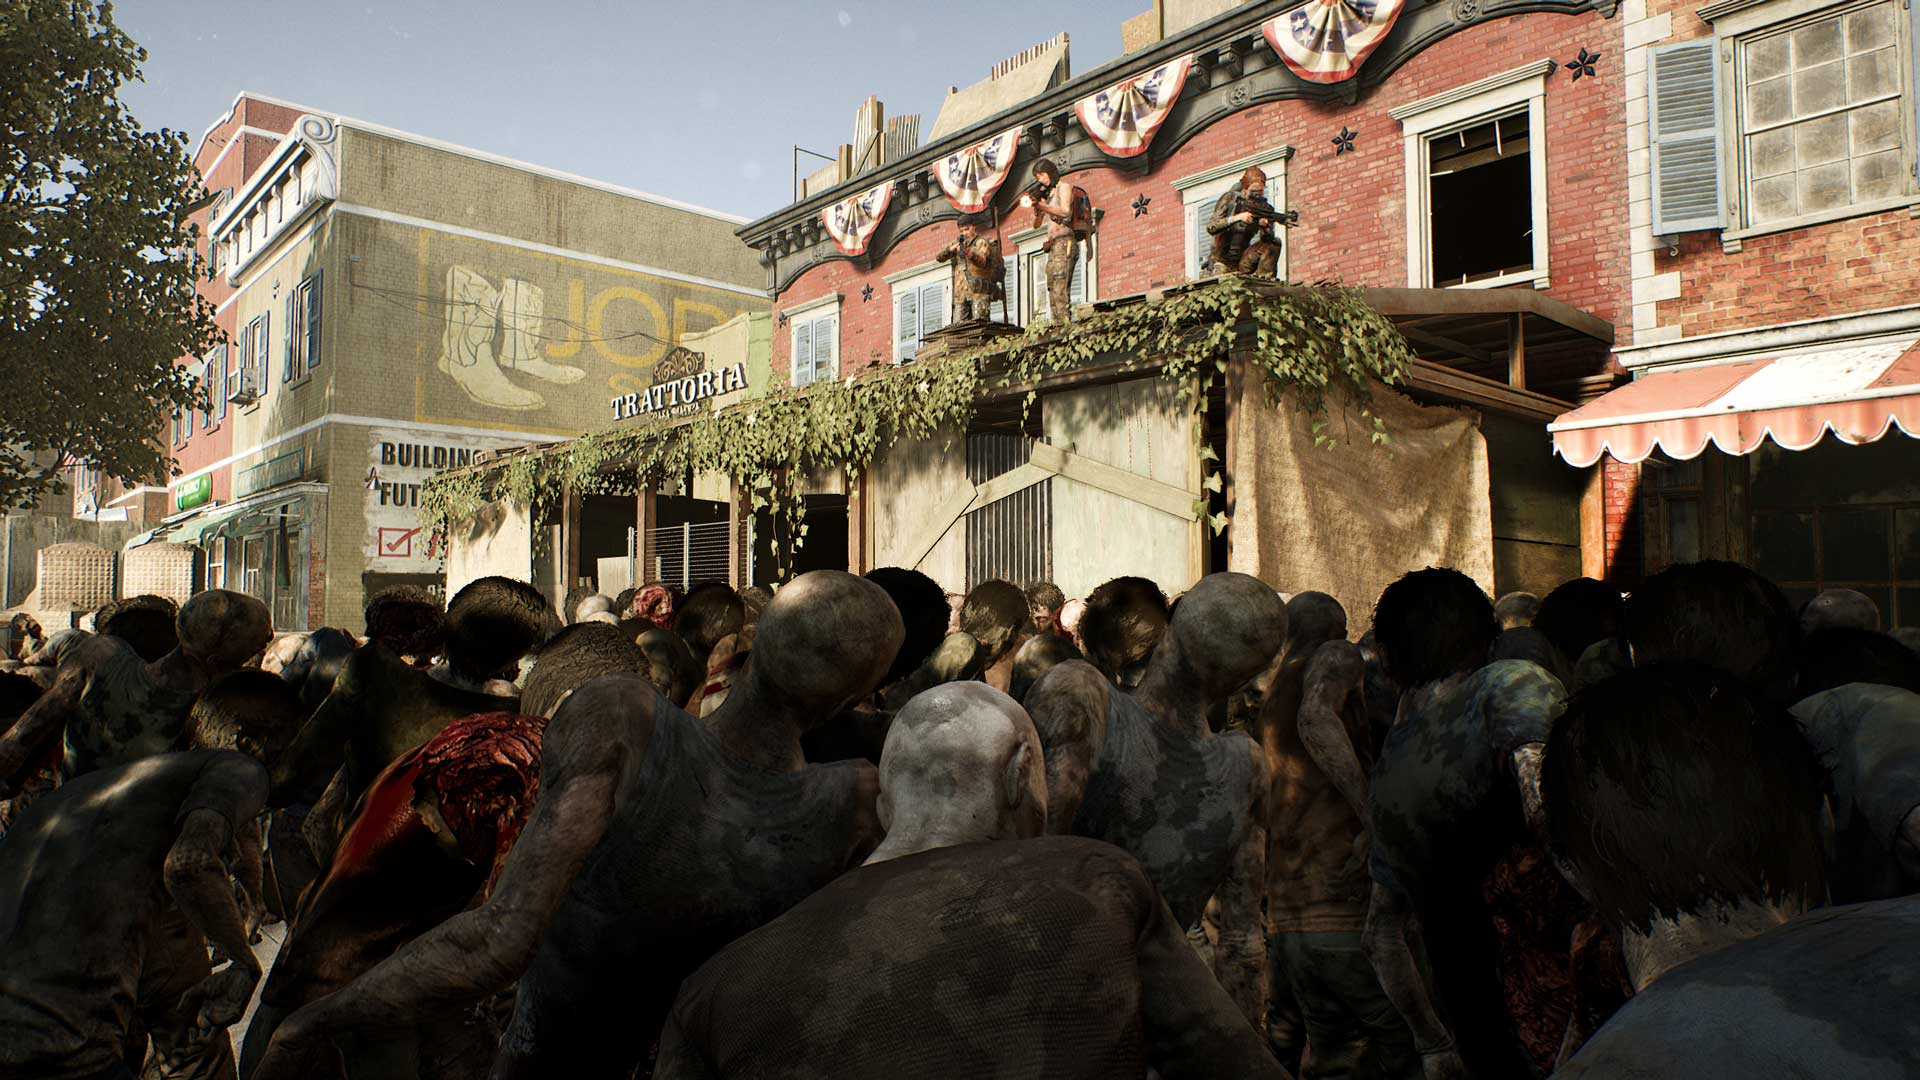 Watch out for the zombies in Overkill's The Walking Dead.